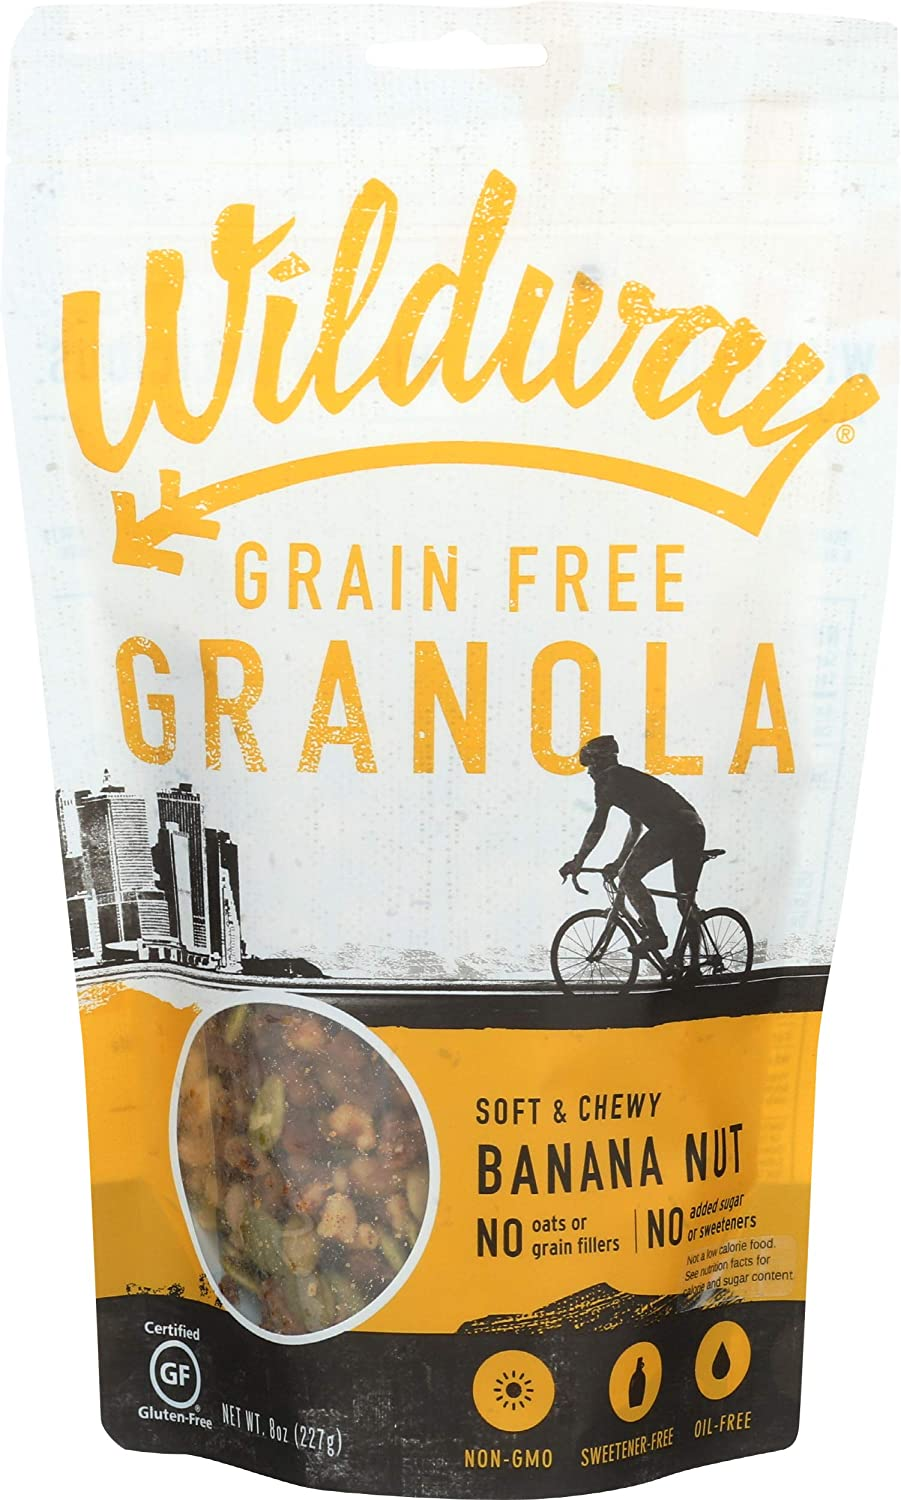 WILDWAY Banana Nut OZ 8 Granola Outlet Special sale item ☆ Free Shipping